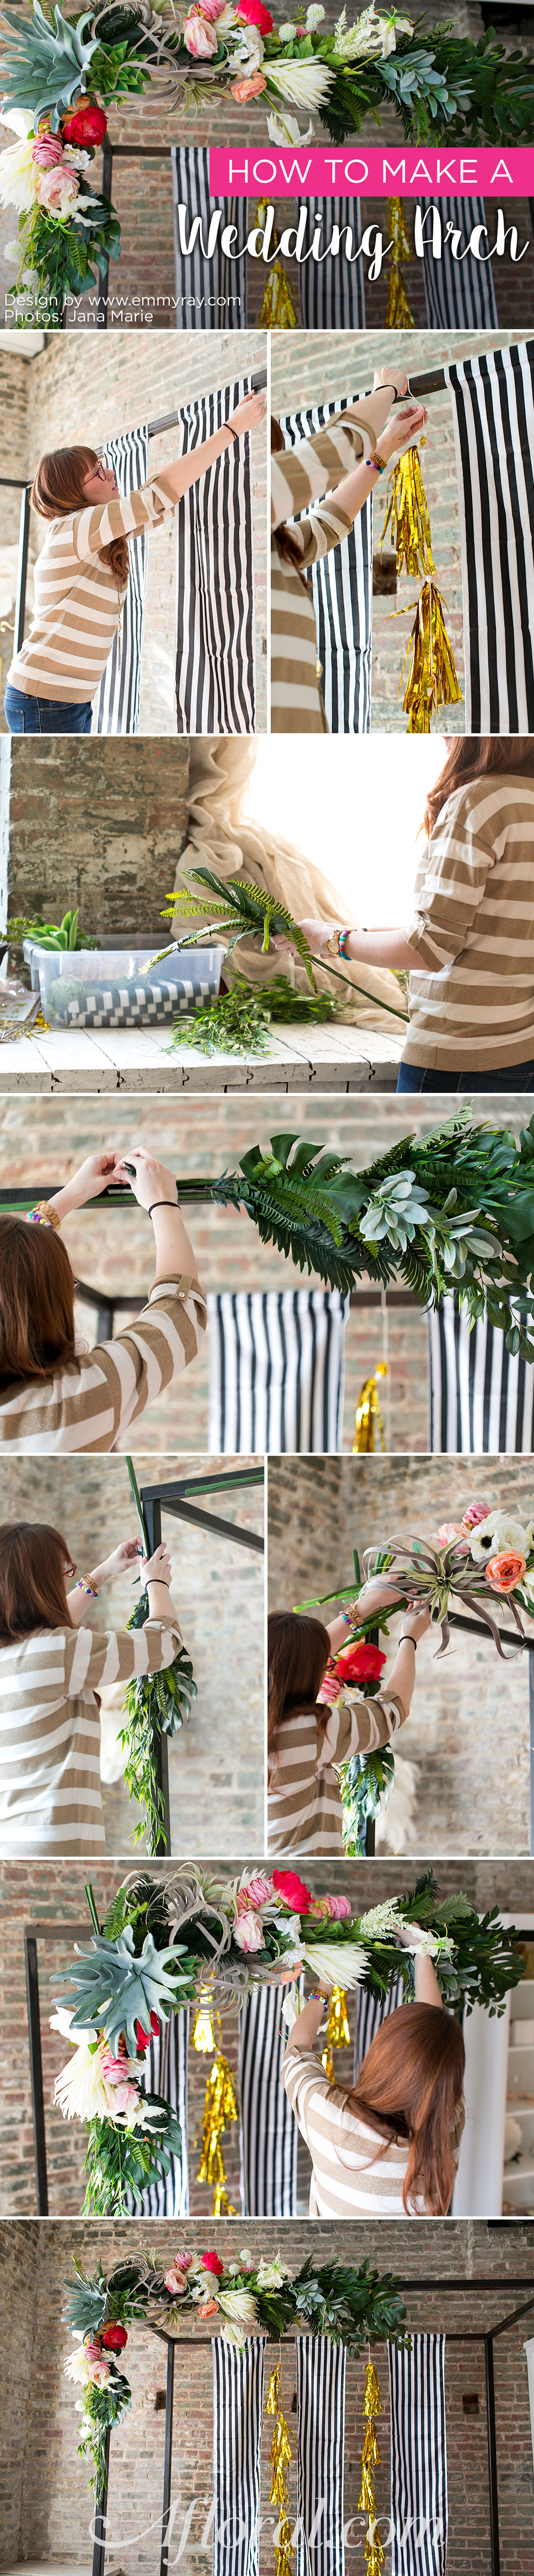 DIY Floral Wedding Arch Wedding arch flowers, Floral